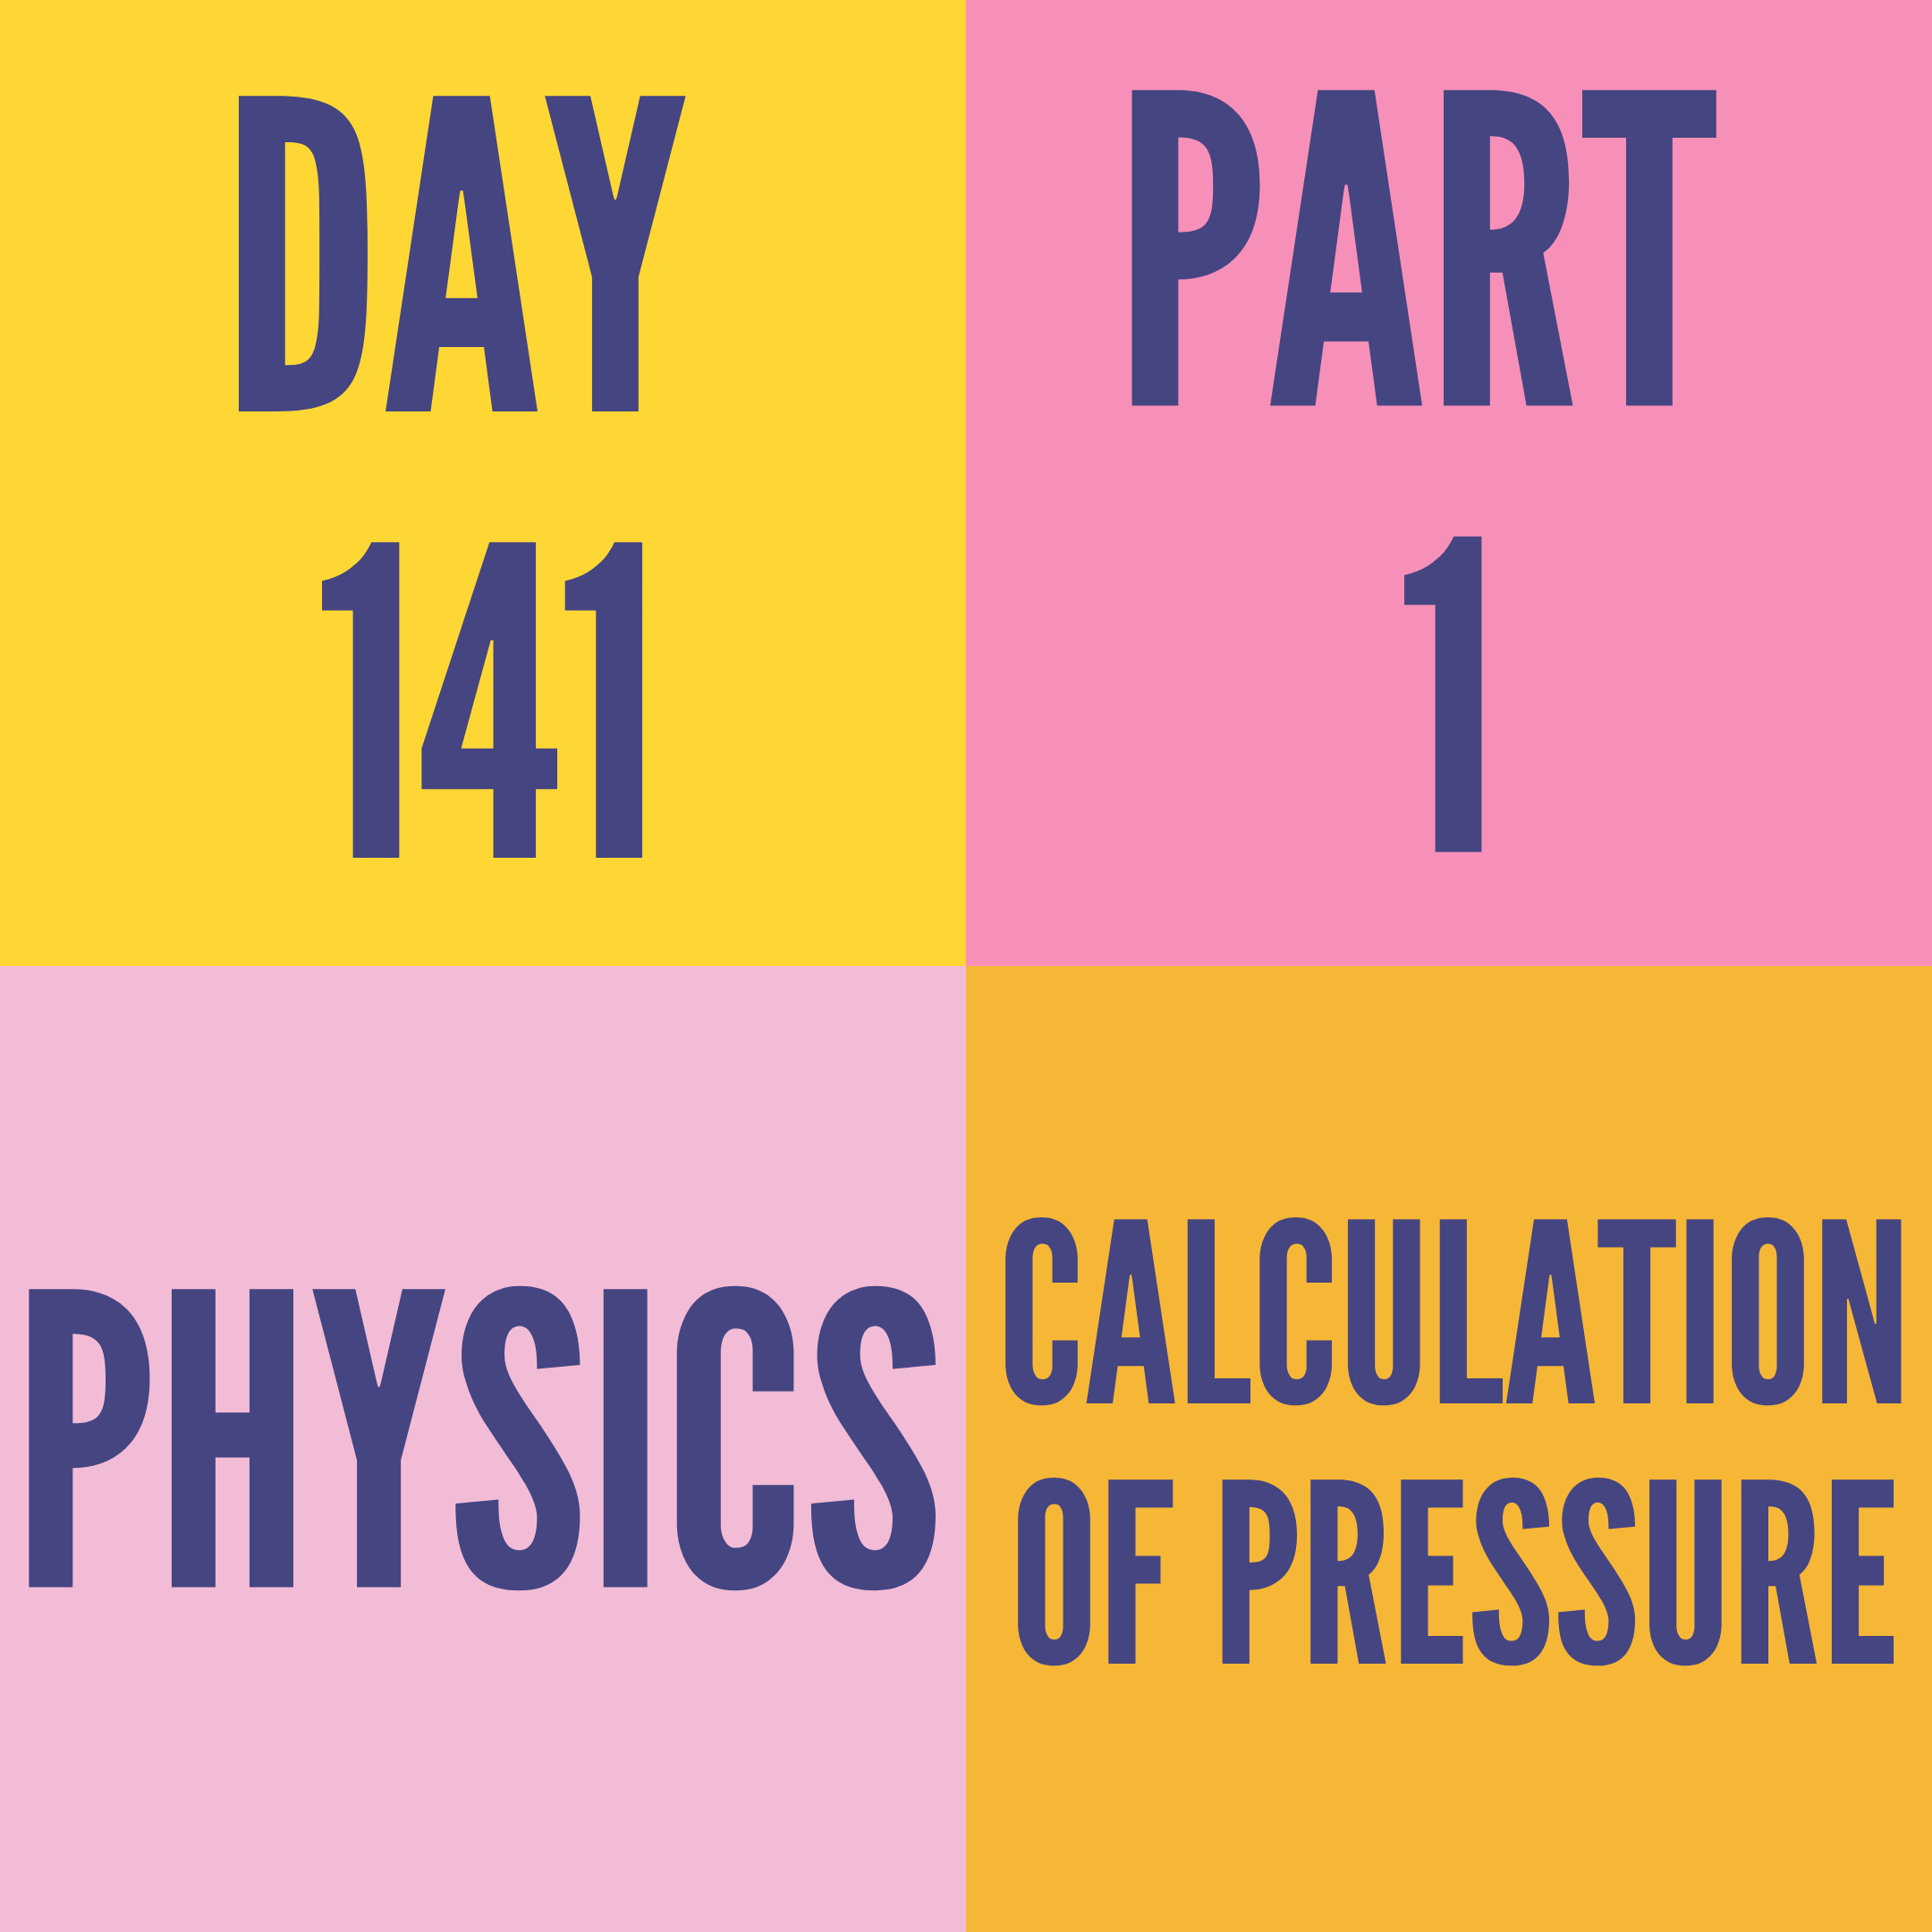 DAY-141 PART-1 CALCULATION OF PRESSURE